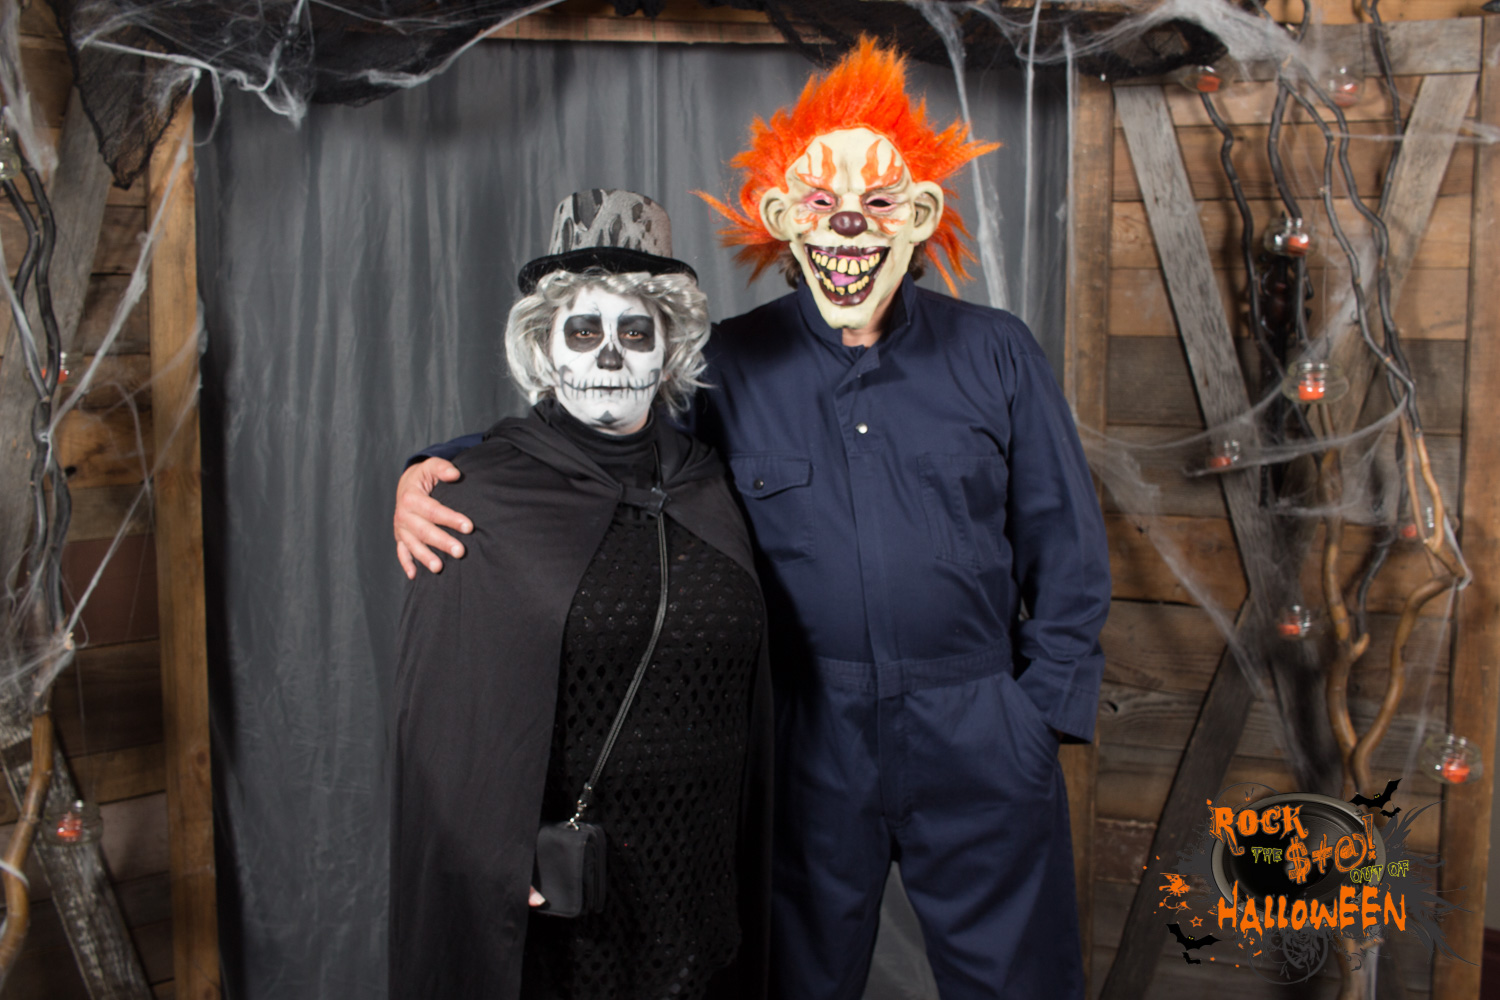 Halloween-PhotoBooth-009-6675